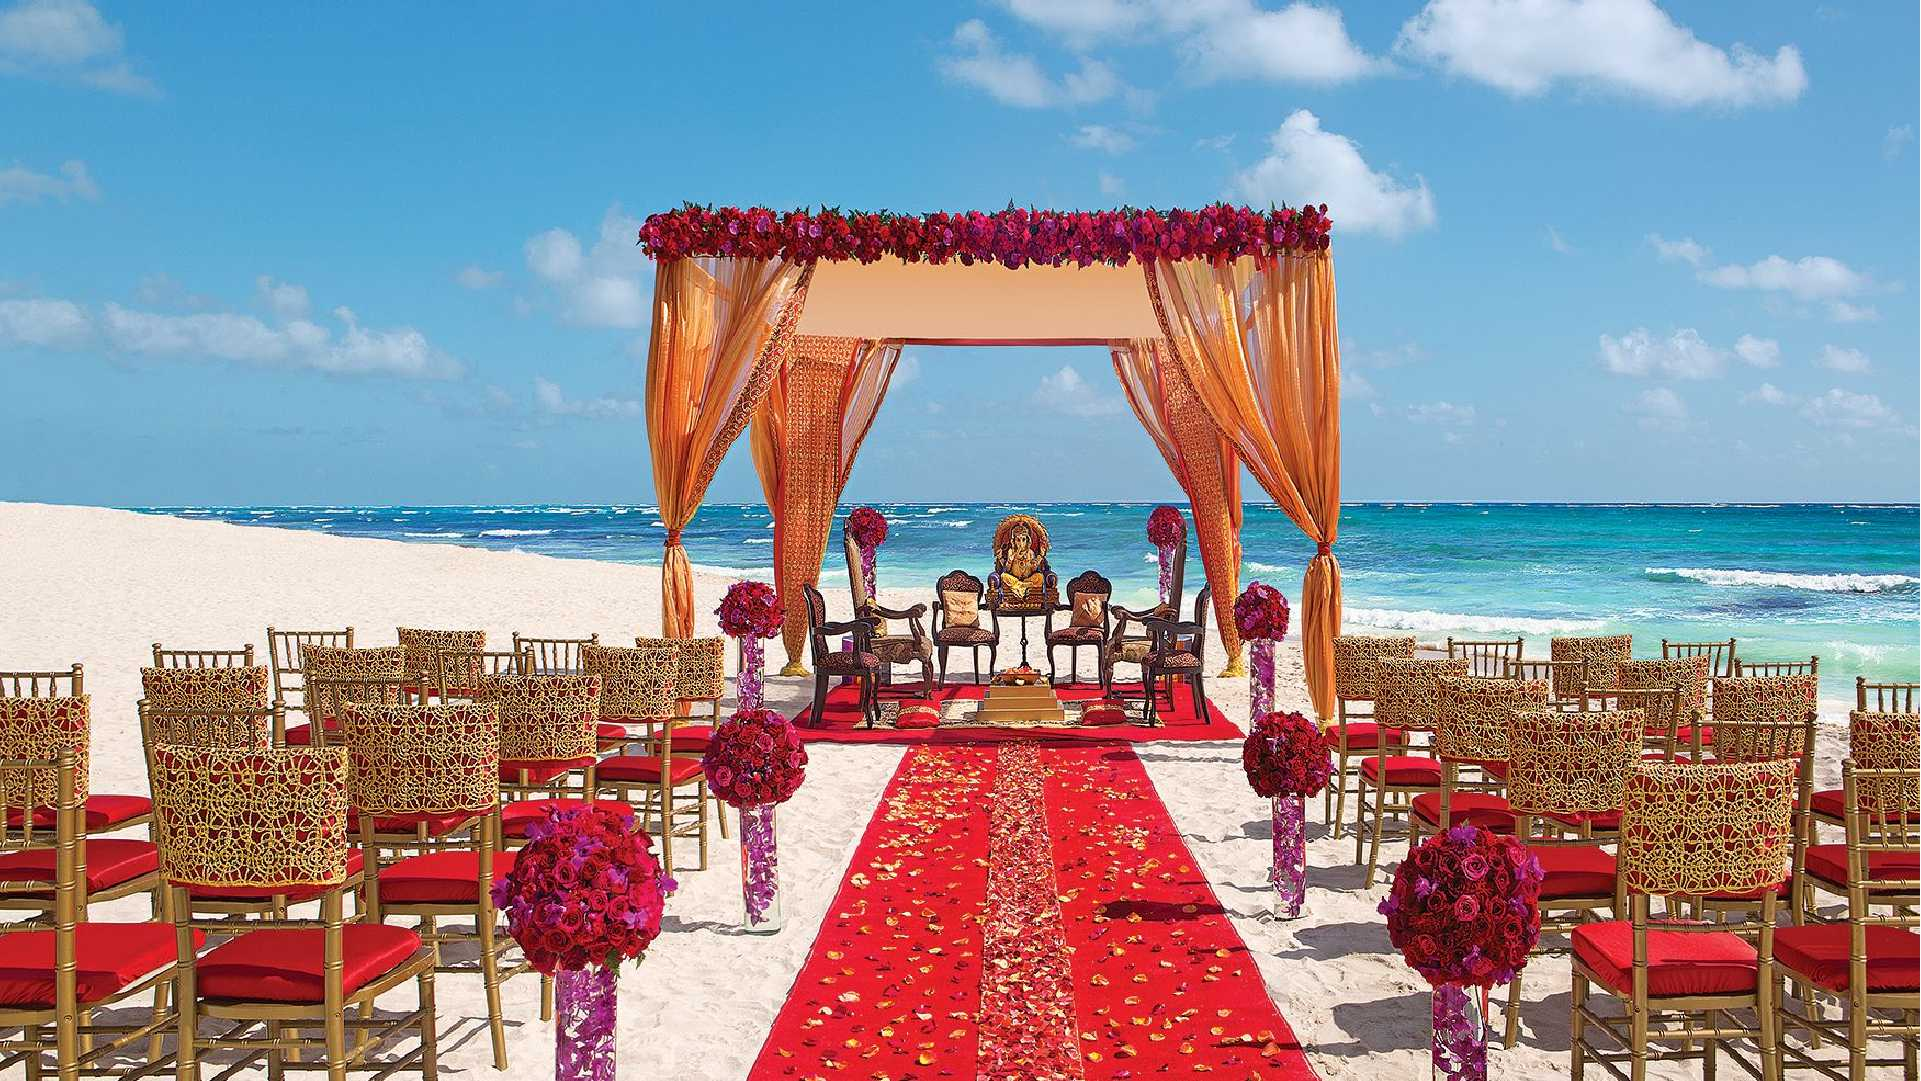 Indian Destination Wedding Venues in Thailand